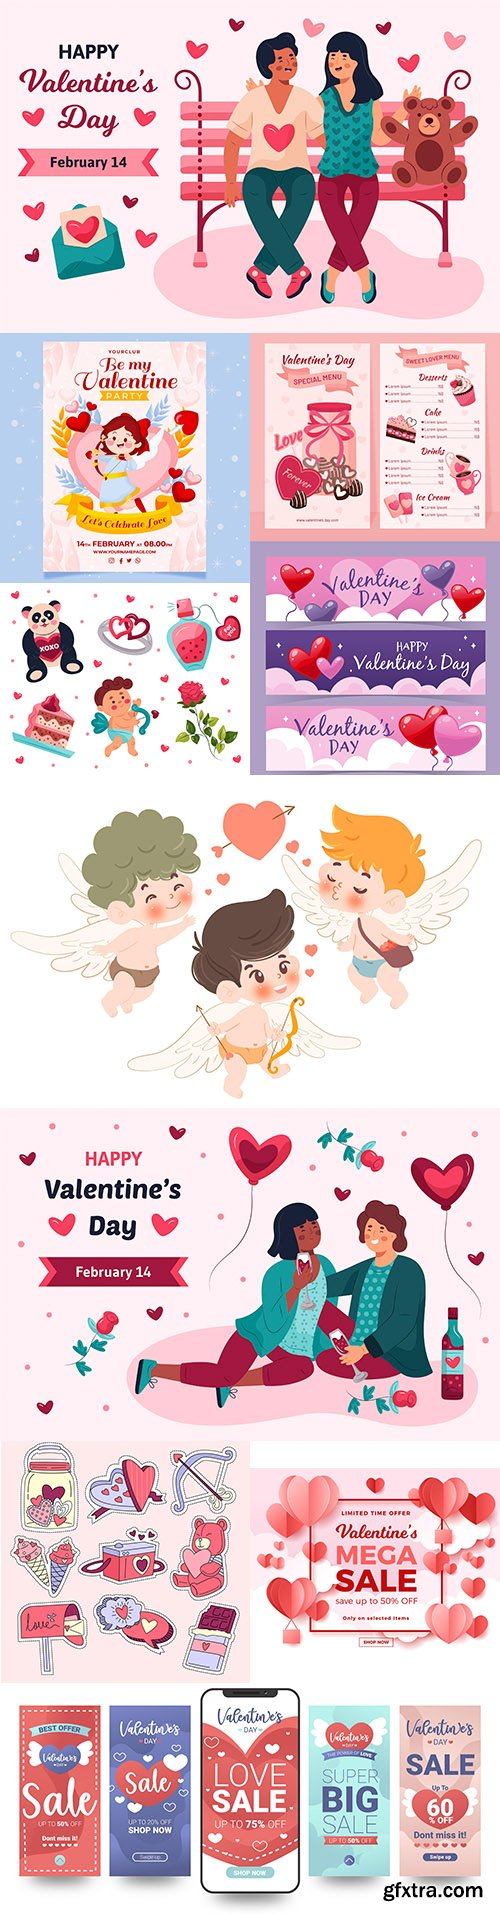 Valentine's Day sale and collection element design